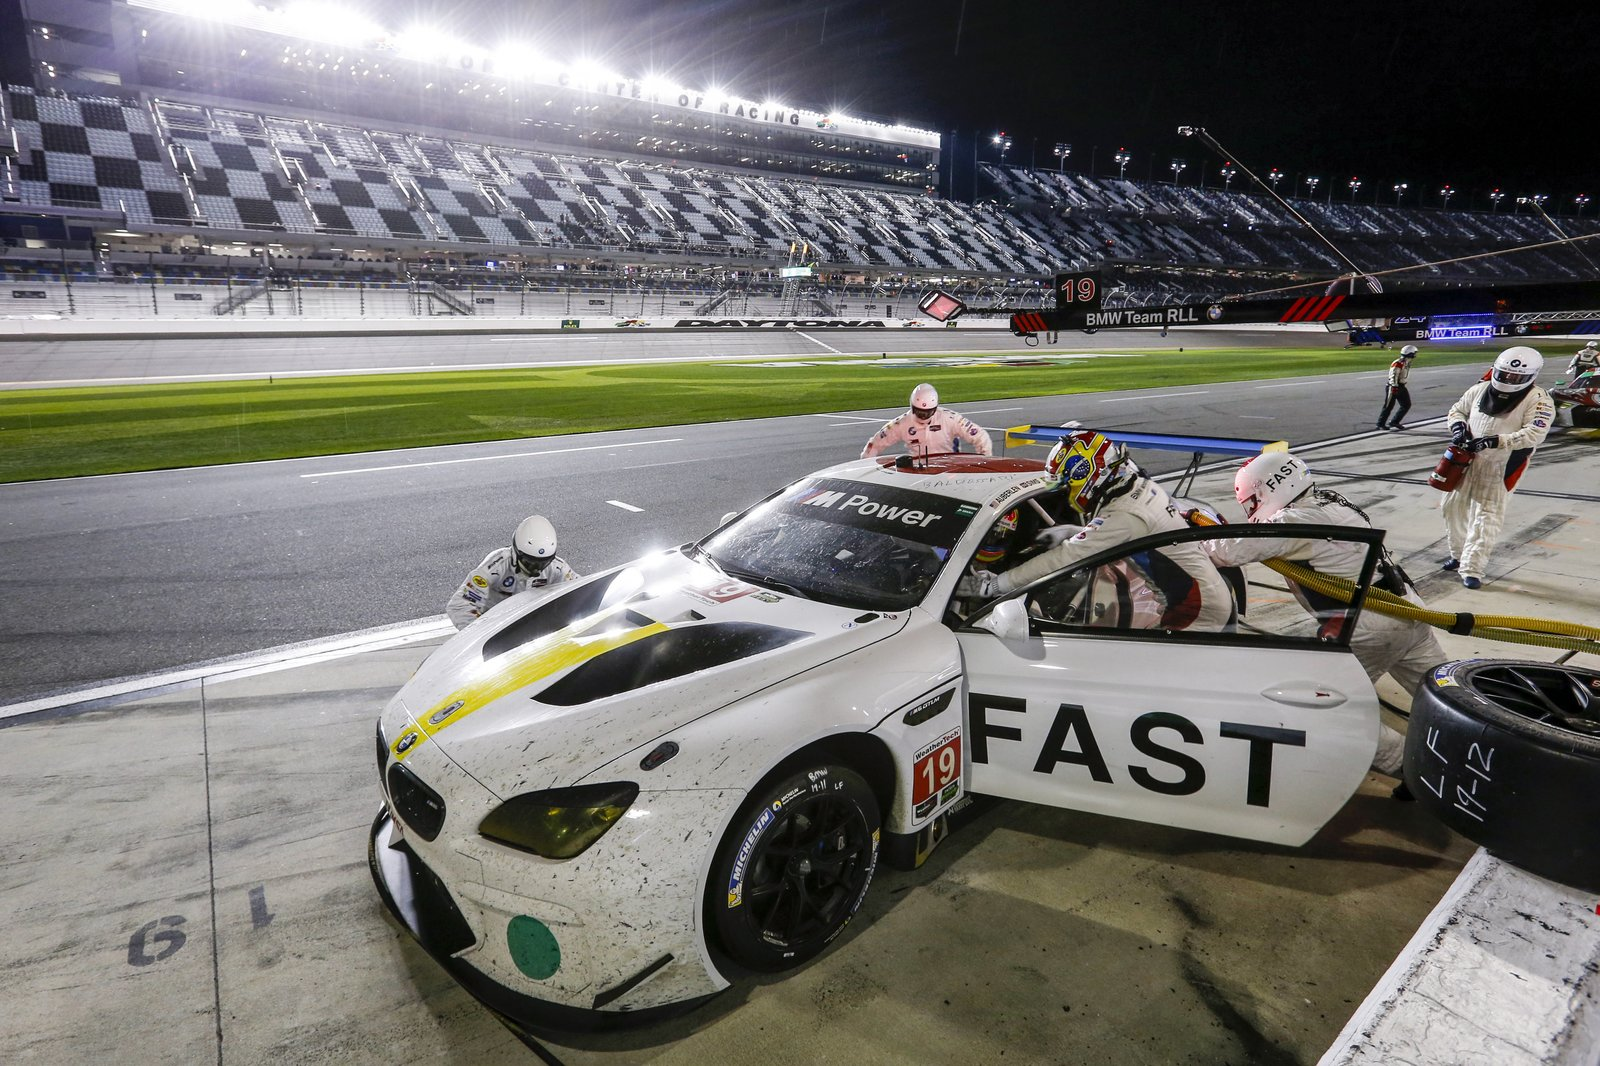 Photo 11 of 12 in John Baldessari Blazes a Trail at the Daytona International Speedway With BMW Art Car #19